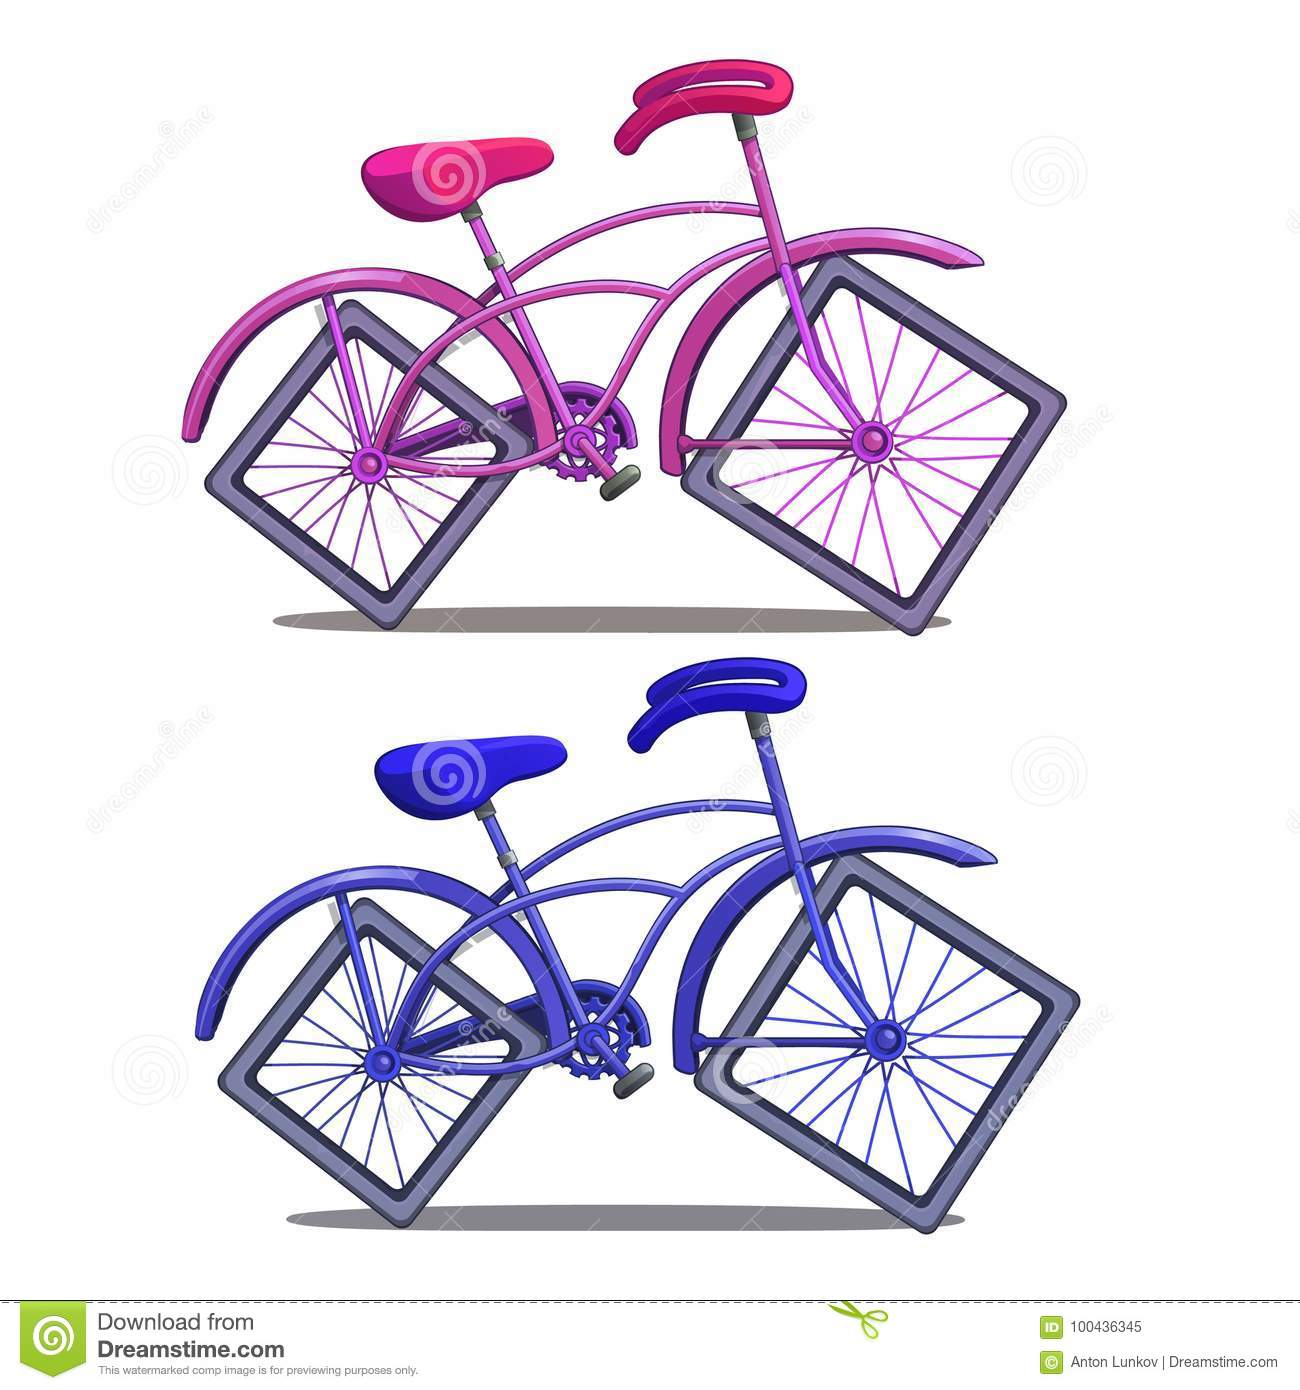 Pink and blue bicycle with square wheels isolated on white background